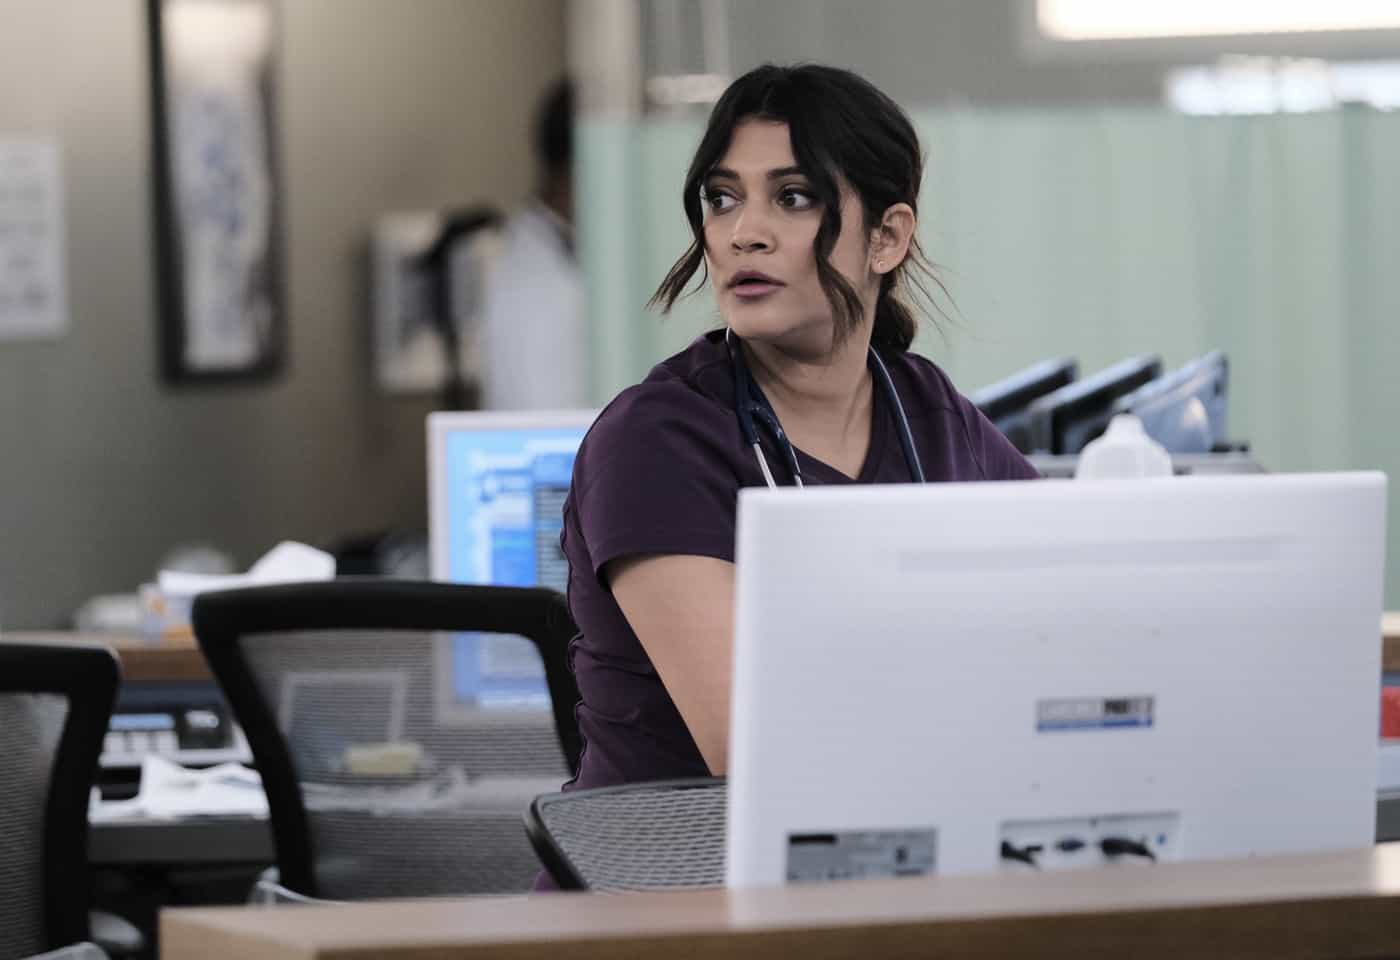 """THE RESIDENT Season 5 Episode 2: Anuja Joshi in the """"No Good Deed"""" season premiere episode of THE RESIDENT airing Tuesday, Sept. 28 (8:00-9:00 PM ET/PT) on FOX. ©2021 Fox Media LLC Cr: Guy D'Alema/FOX"""